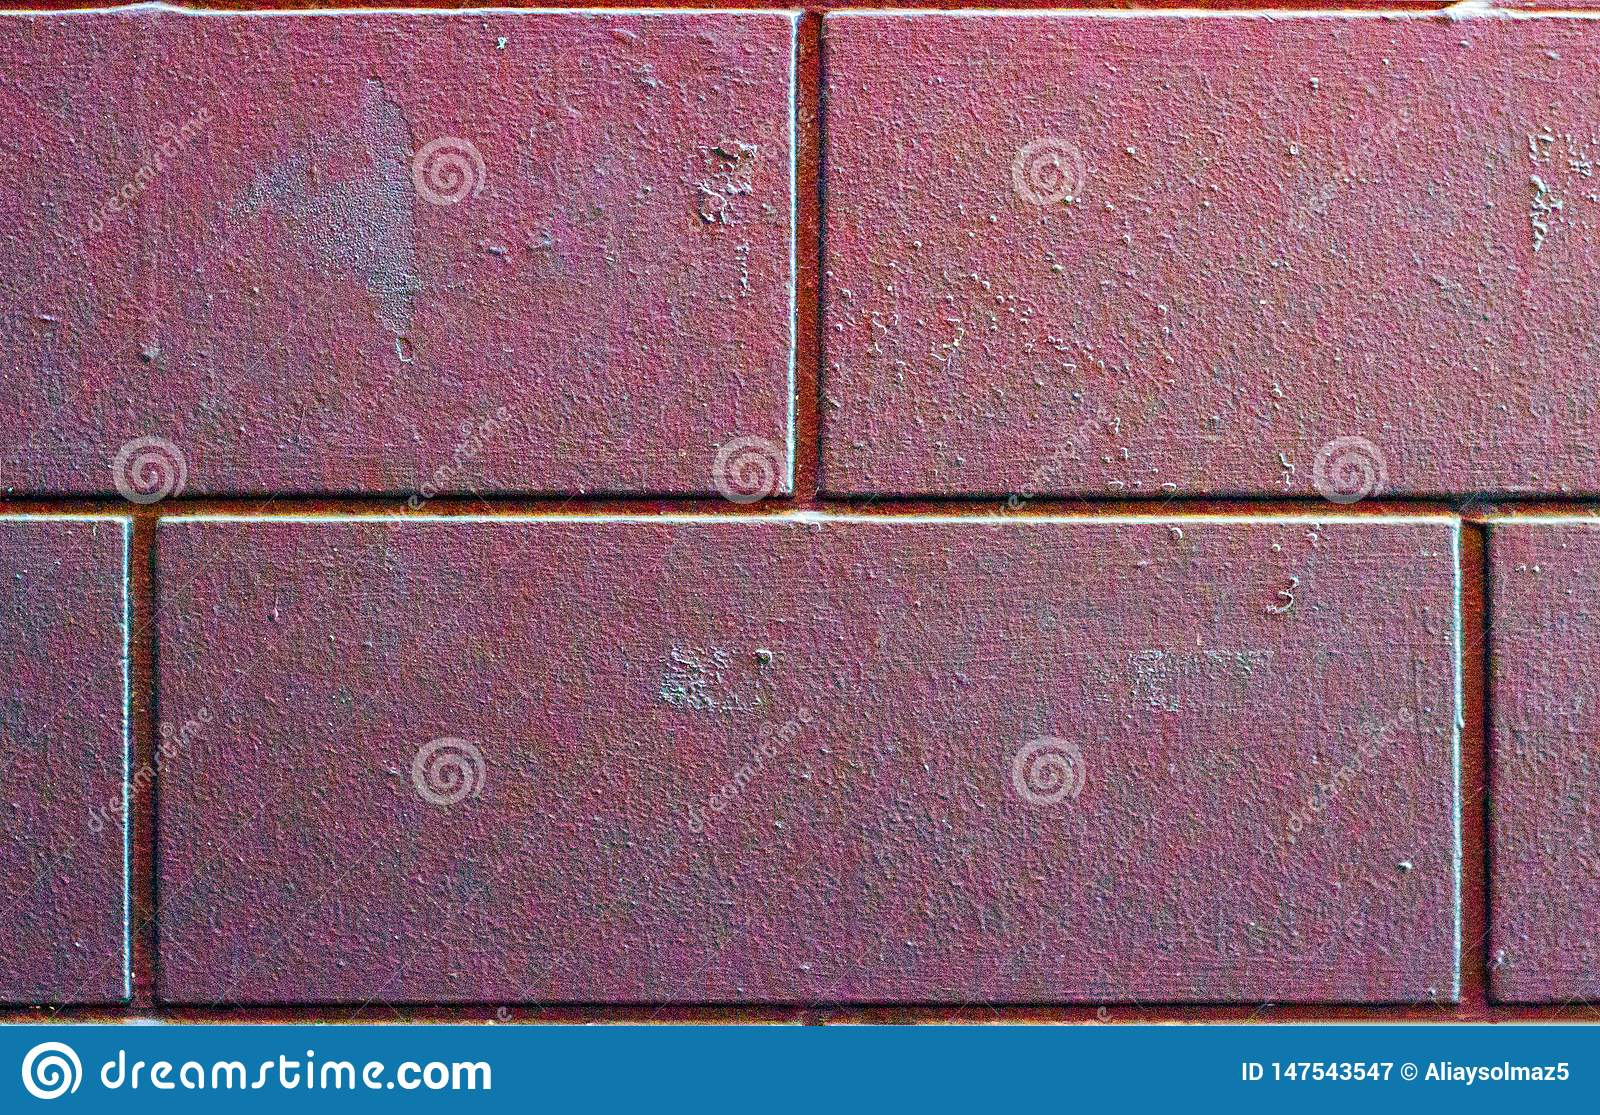 Huge and Dirty Bricks, Wall Pattern or Texture. Brick Background